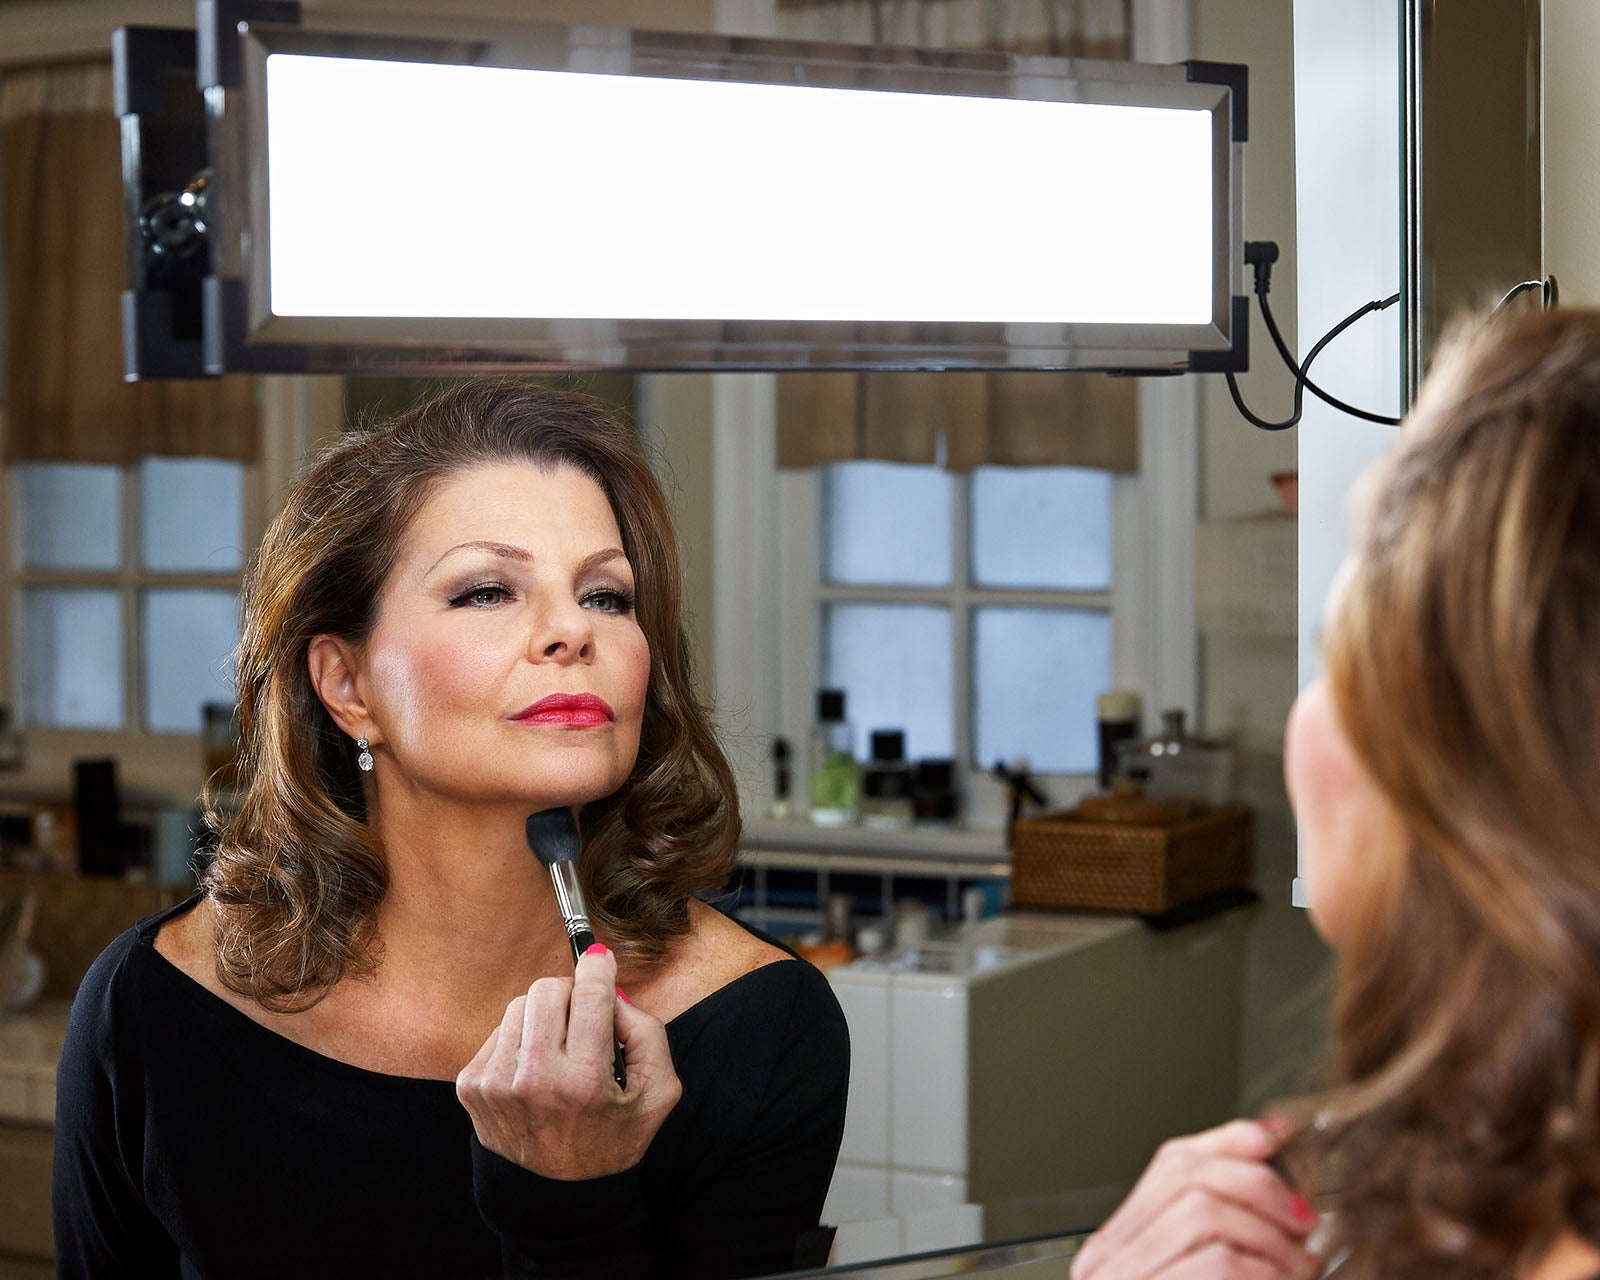 Vanessa touches up her makeup using the Eyelight